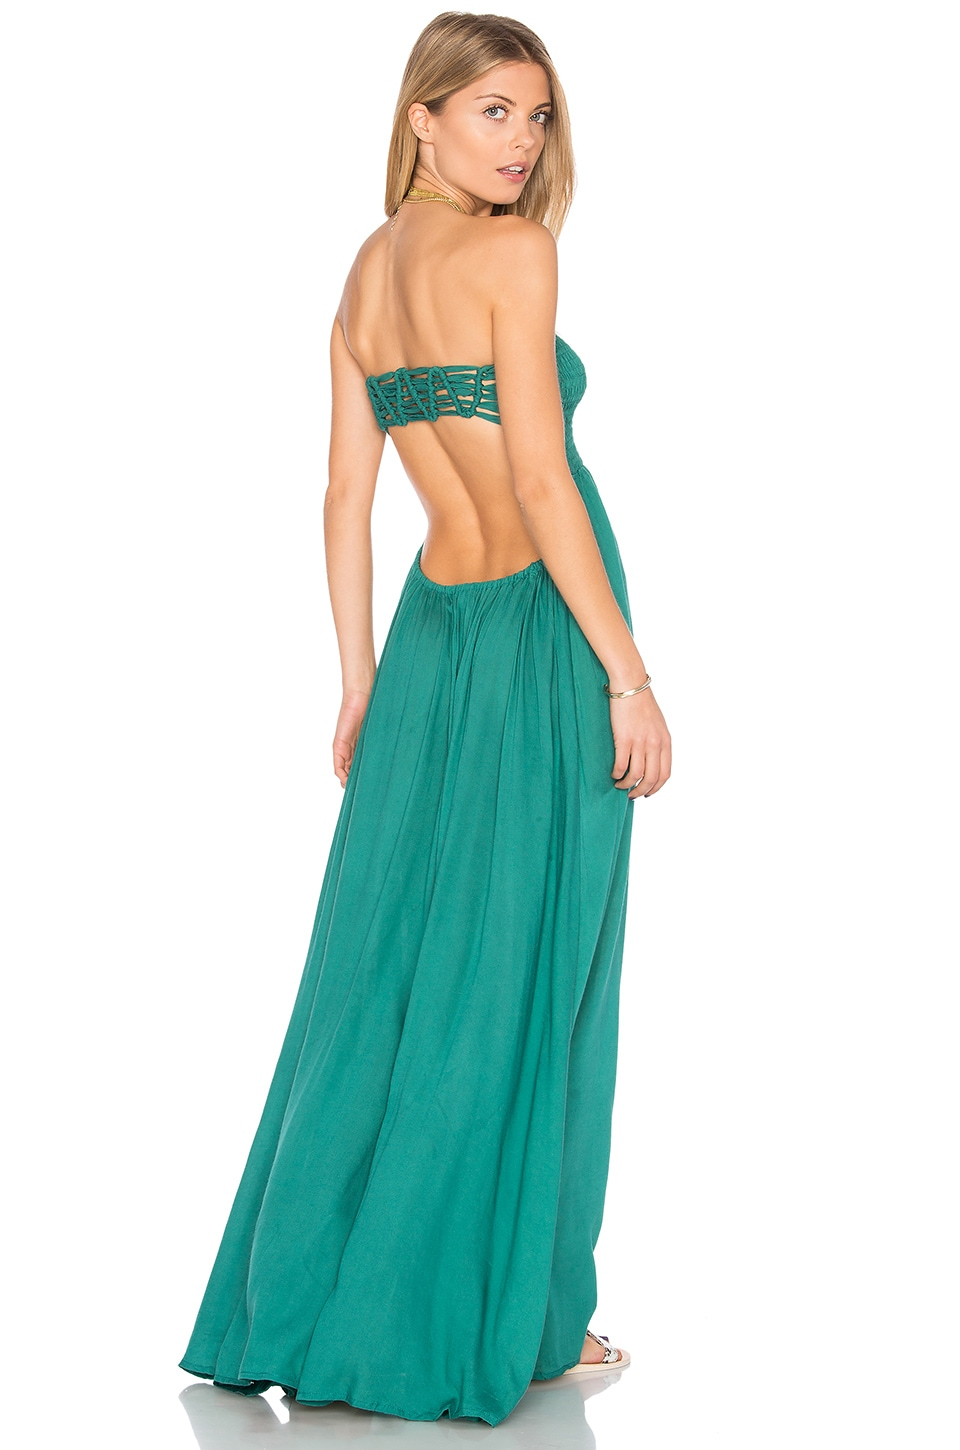 Tiare Hawaii Kai Strapless Maxi Dress in Forest Green